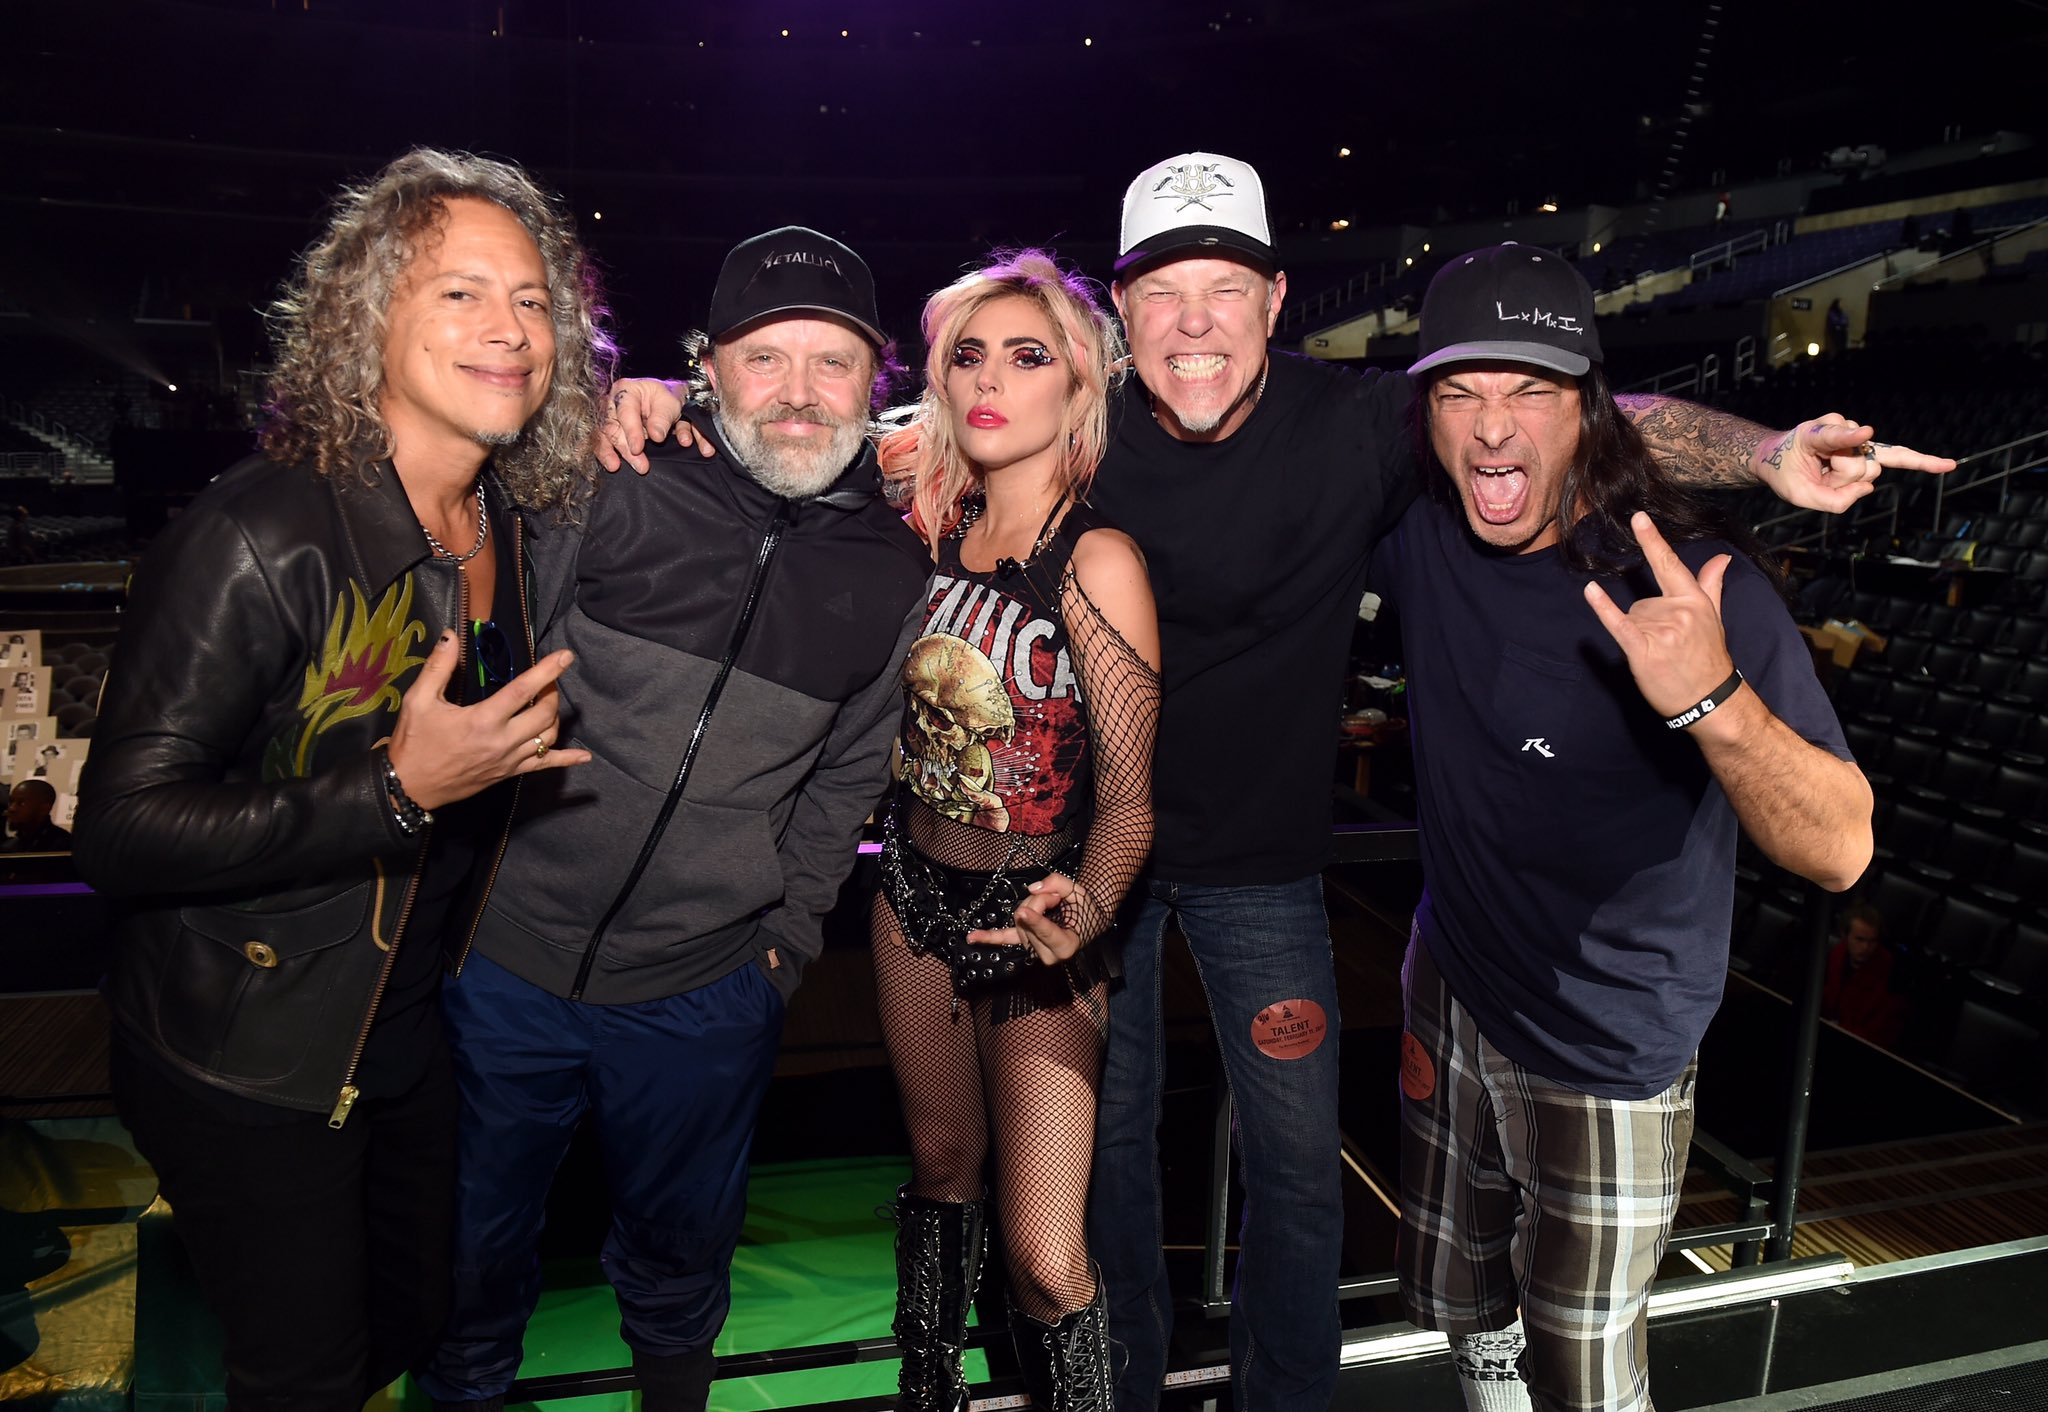 See you at the Grammys. ��#MetalliGa @Metallica ���� https://t.co/asIALPRrPC